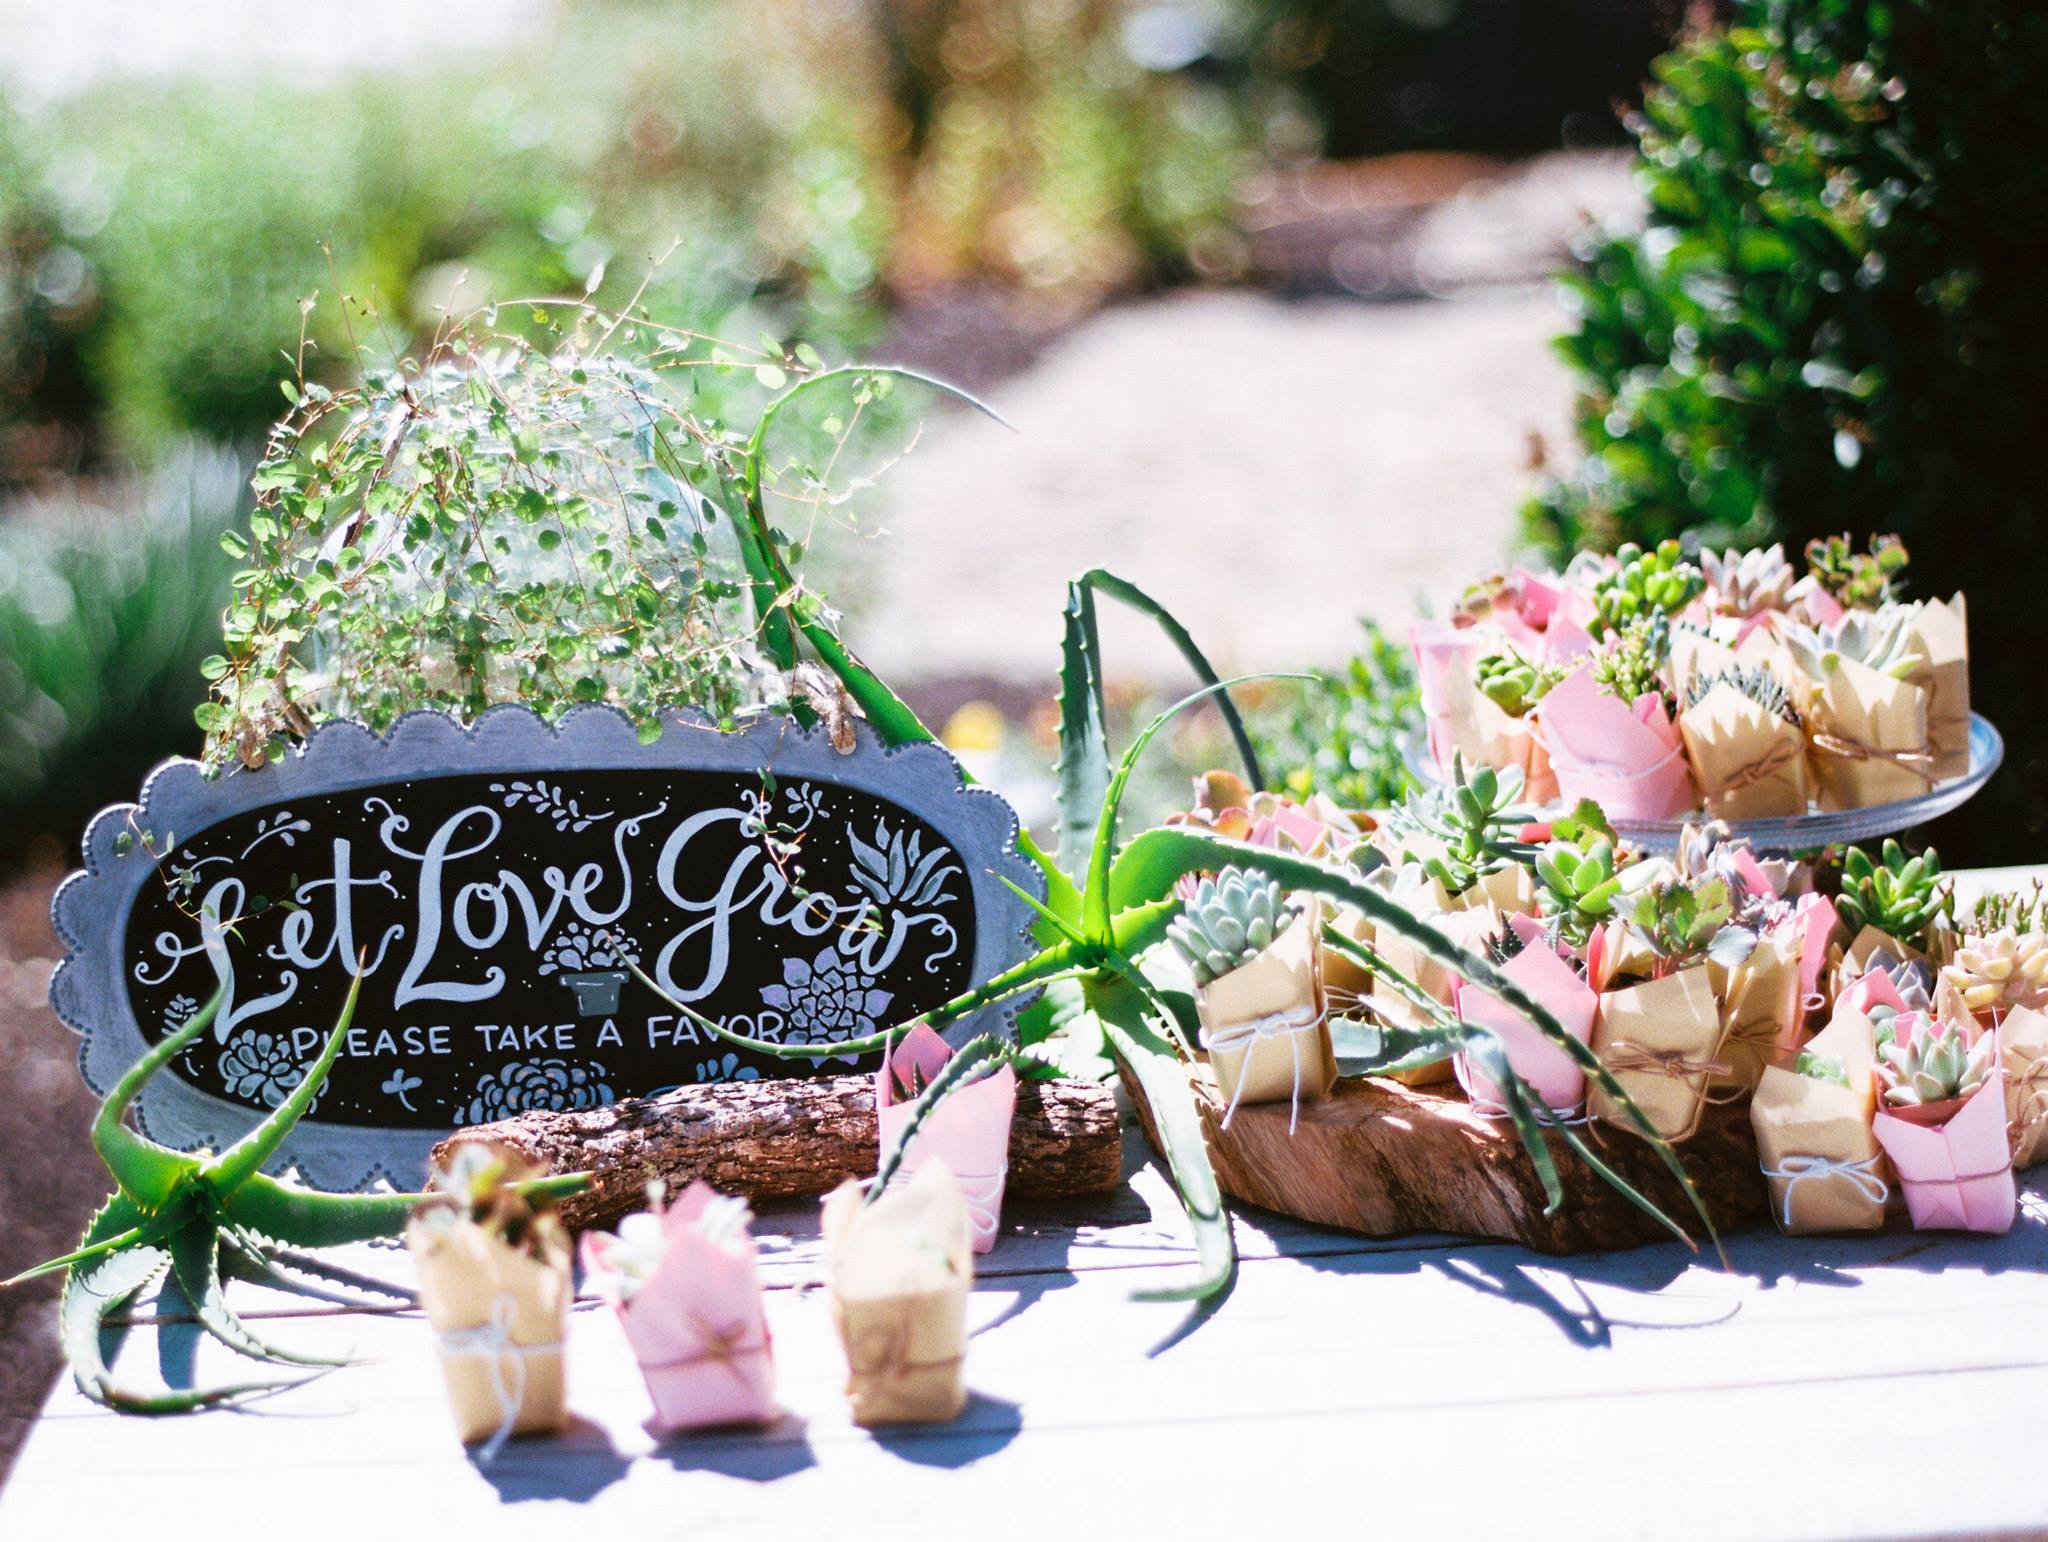 My cousin's beautiful favor table.  Photo credit: Jessica Garmon